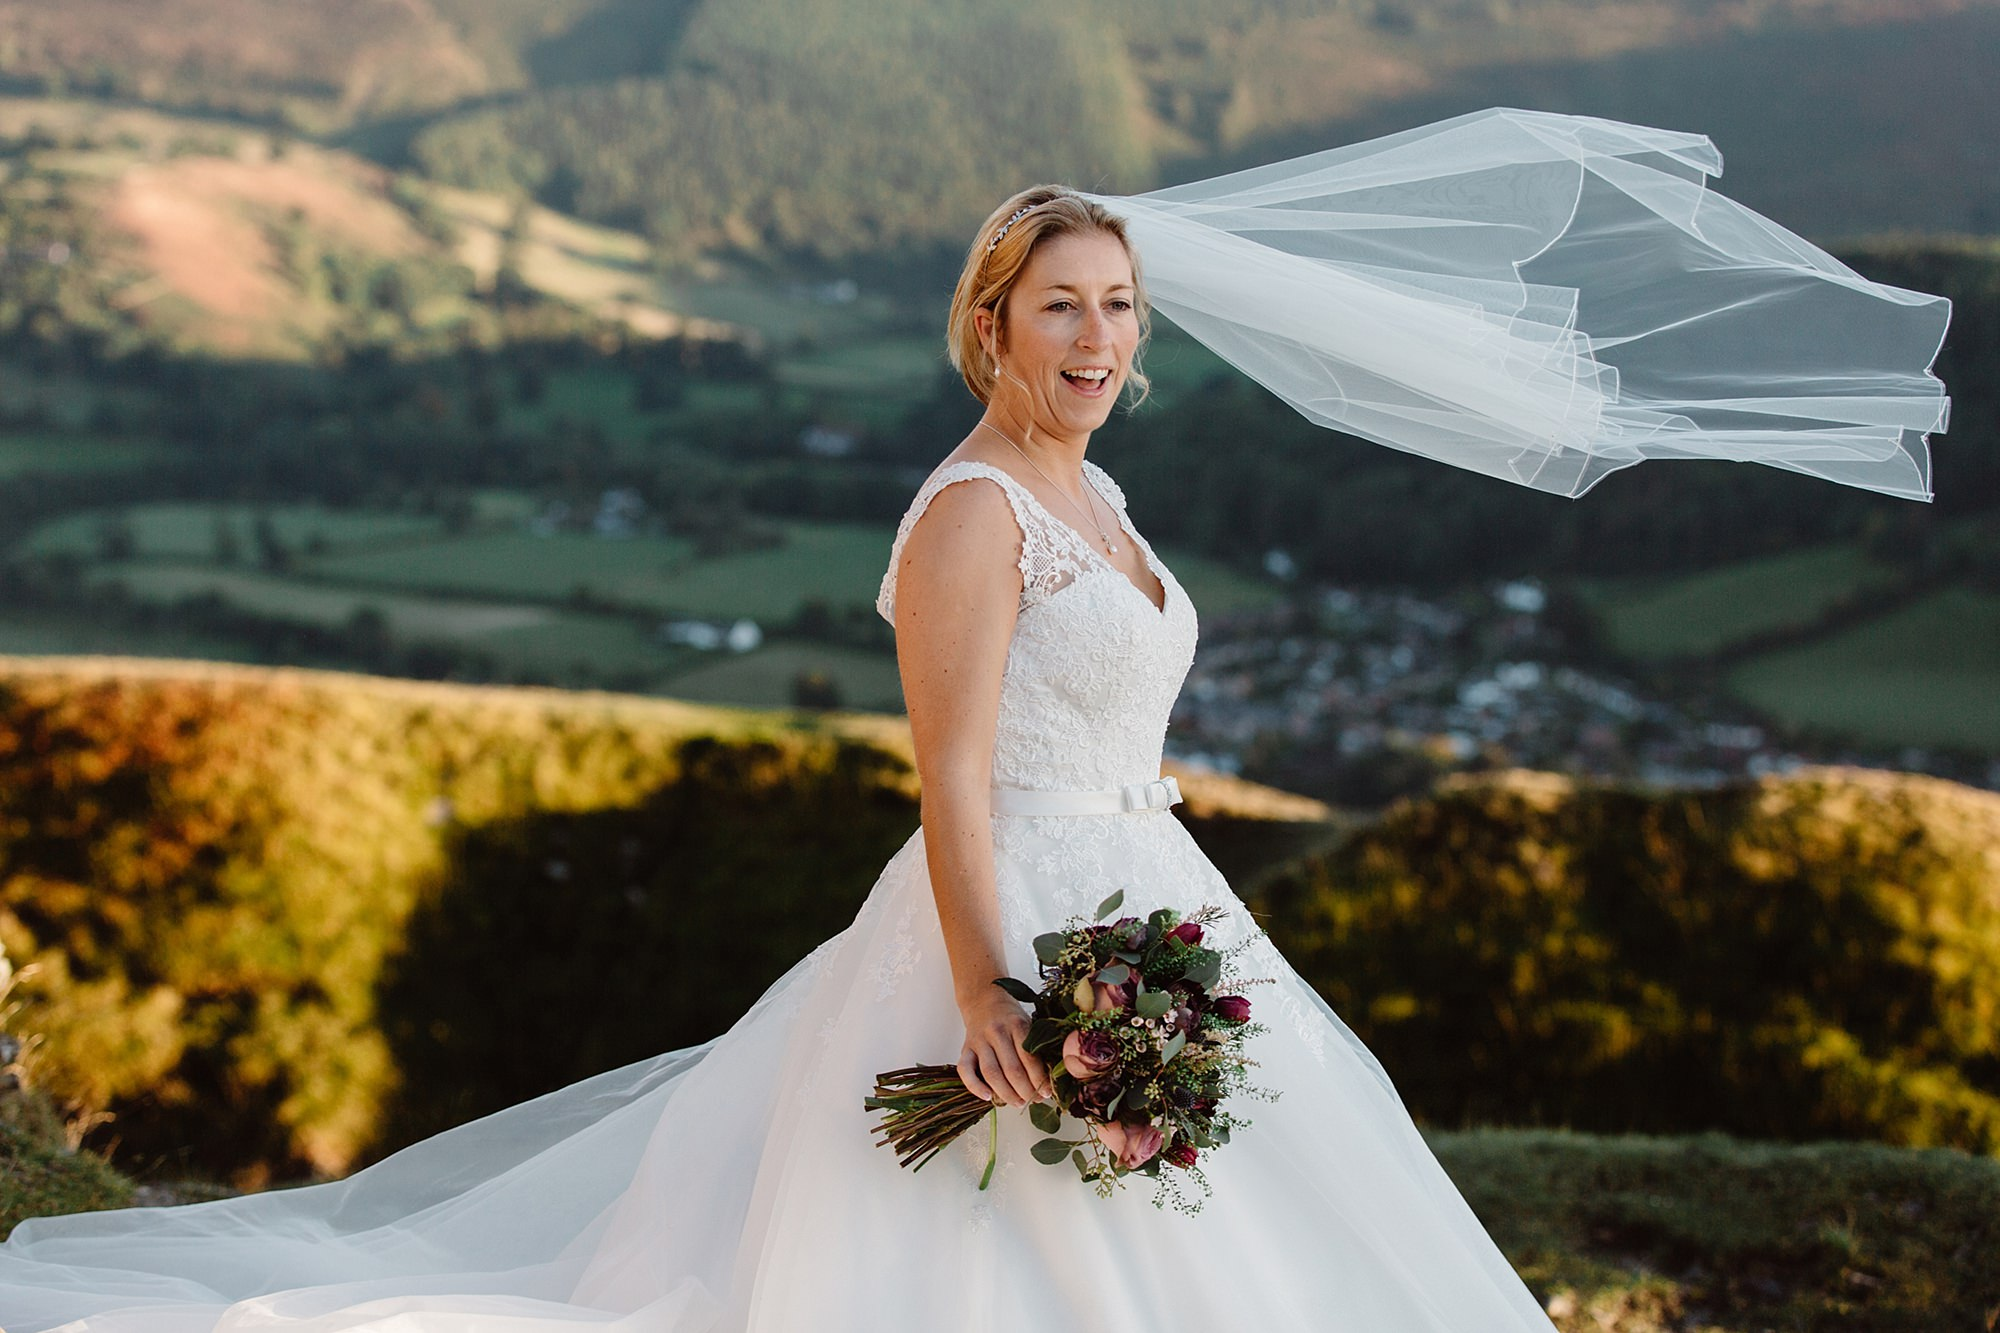 Castell dinas bran wedding photography a bride laughs as her veil blows in the wind